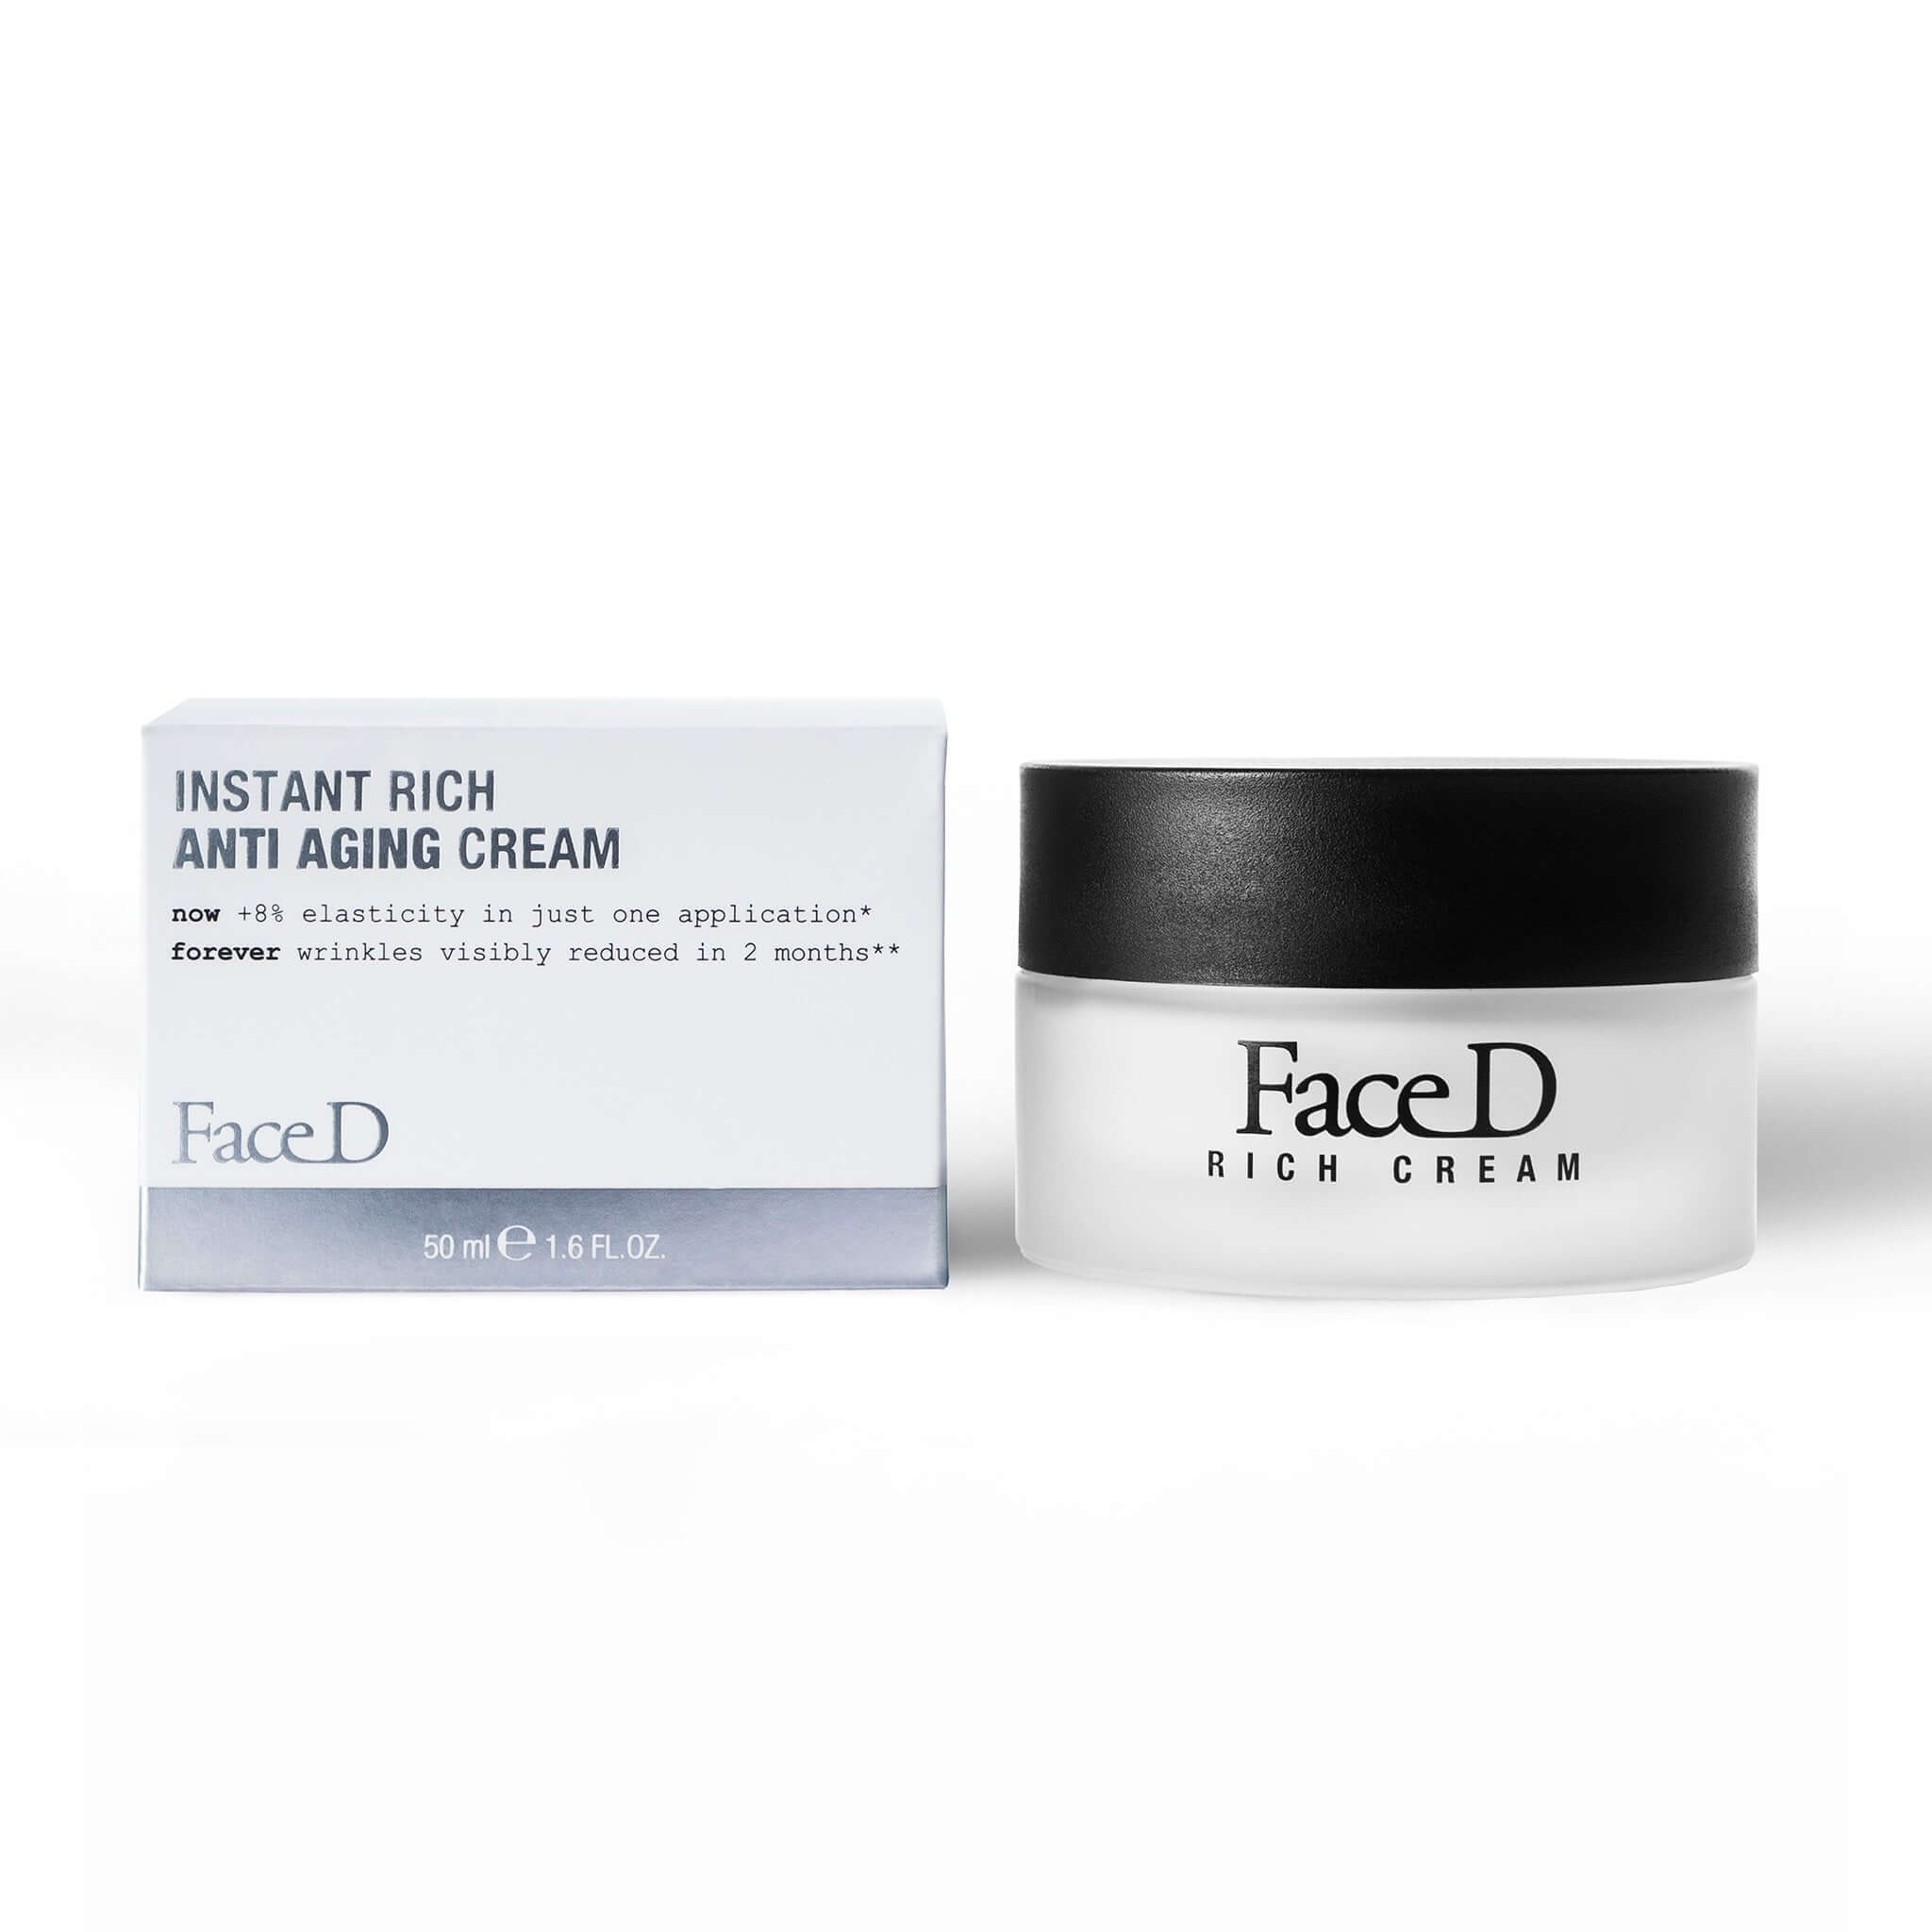 Instant-Rich-Anti-aging-Face-Neck-Cream-FaceD-Anti-Ageing-Anti-Wrinkle || Crema-viso-collo-antietà-Instant-Rich-FaceD-antietà-antirughe